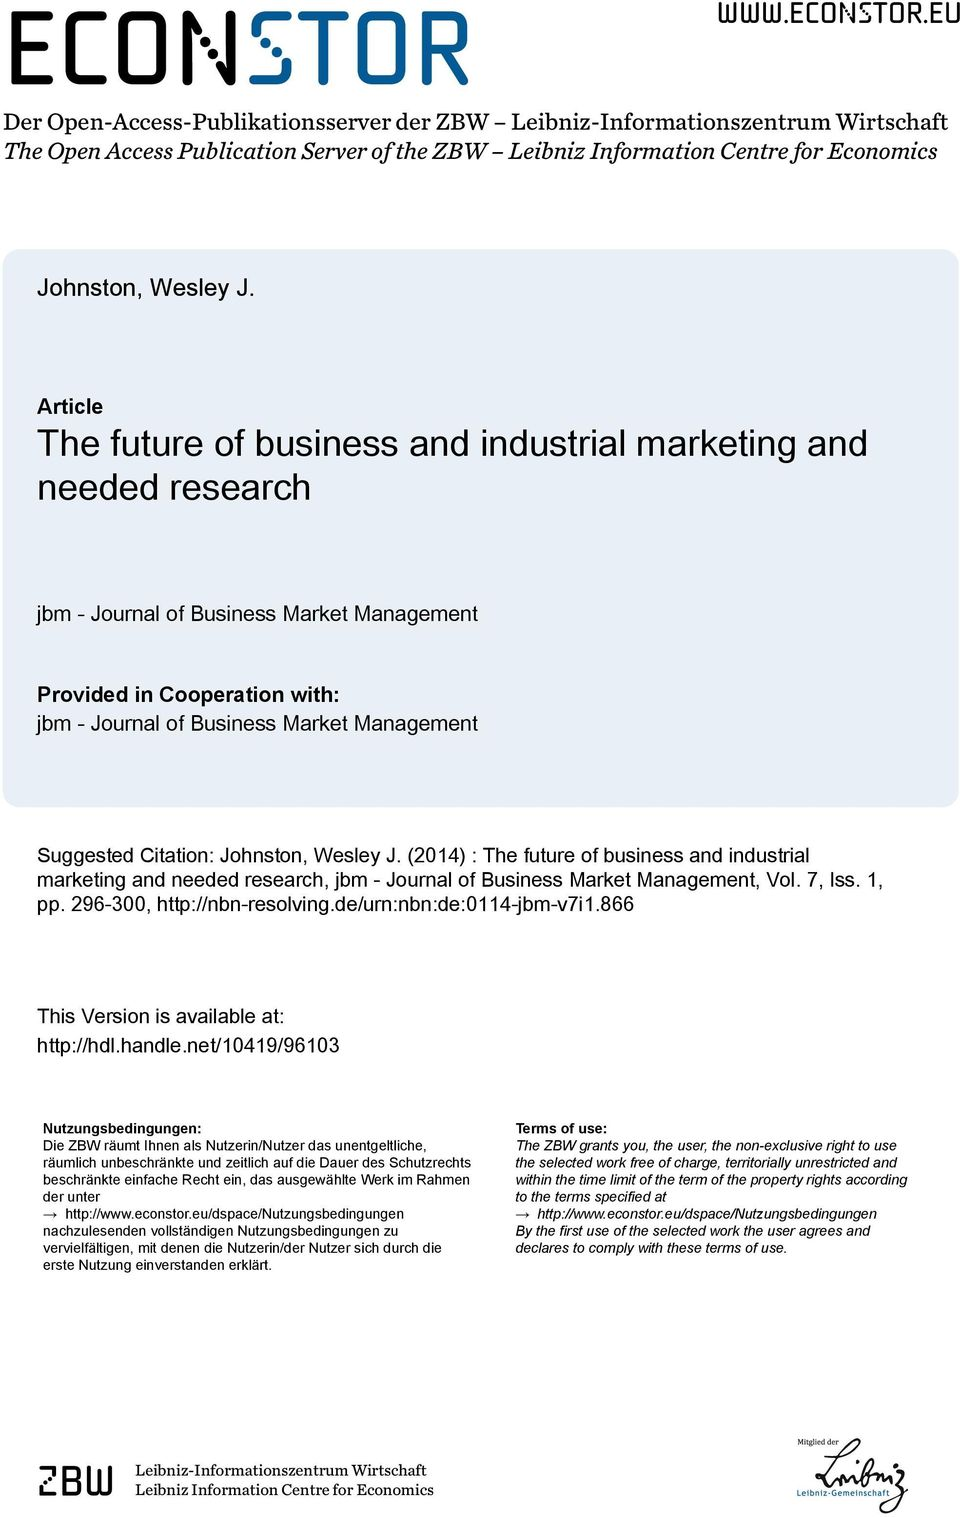 Suggested Citation: Johnston, Wesley J. (2014) : The future of business and industrial marketing and needed research, jbm - Journal of Business Market Management, Vol. 7, Iss. 1, pp.